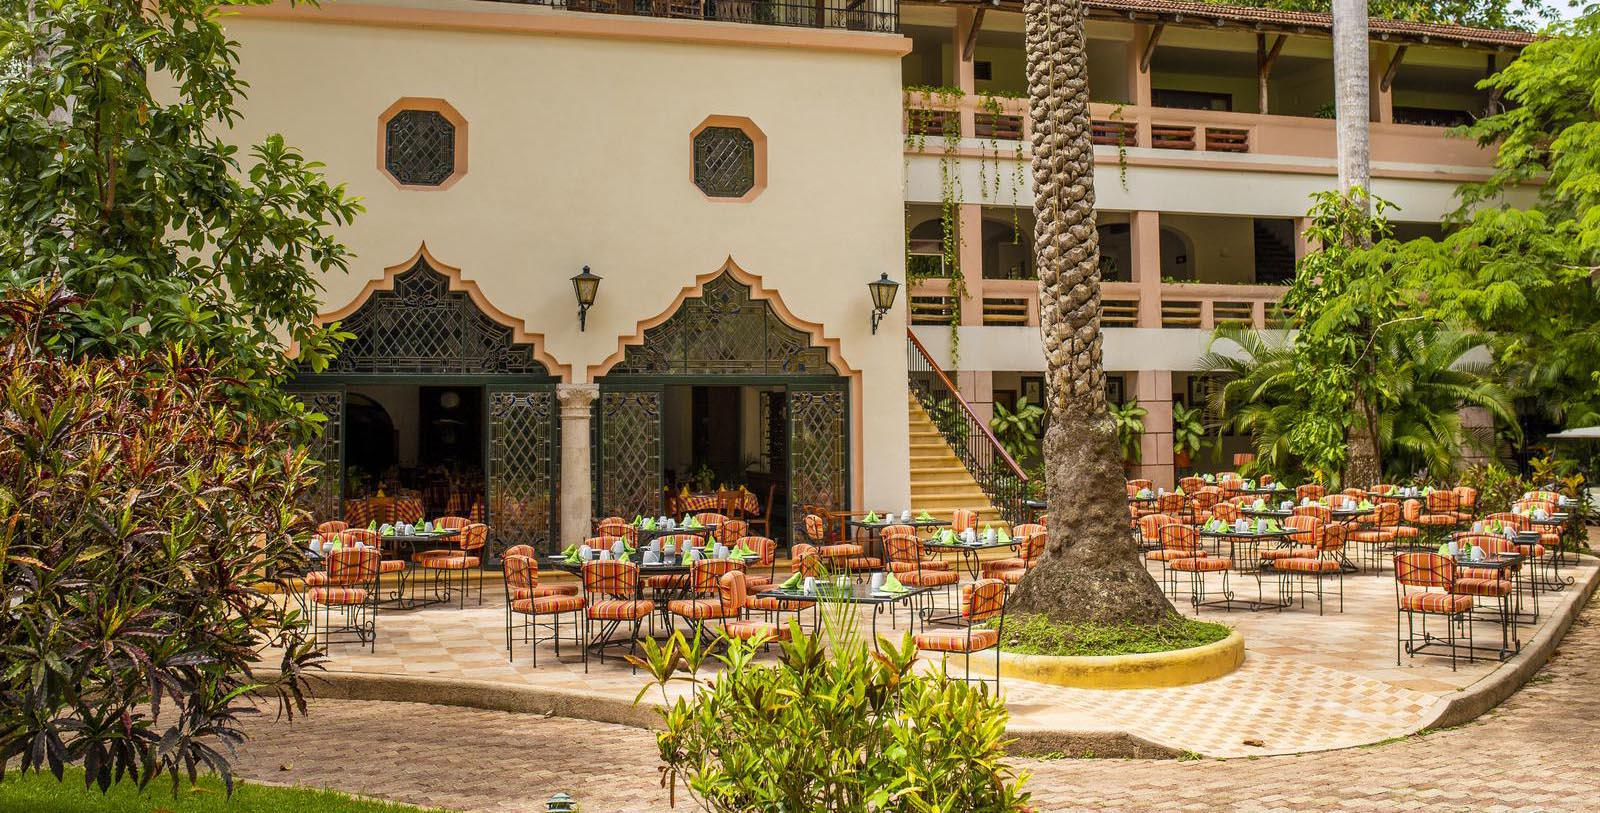 Image of Outdoor Dining Area with Palm Trees Mayaland Hotel & Bungalows,1923, Member of Historic Hotels Worldwide, in Chichen Itza, Mexico, Experience